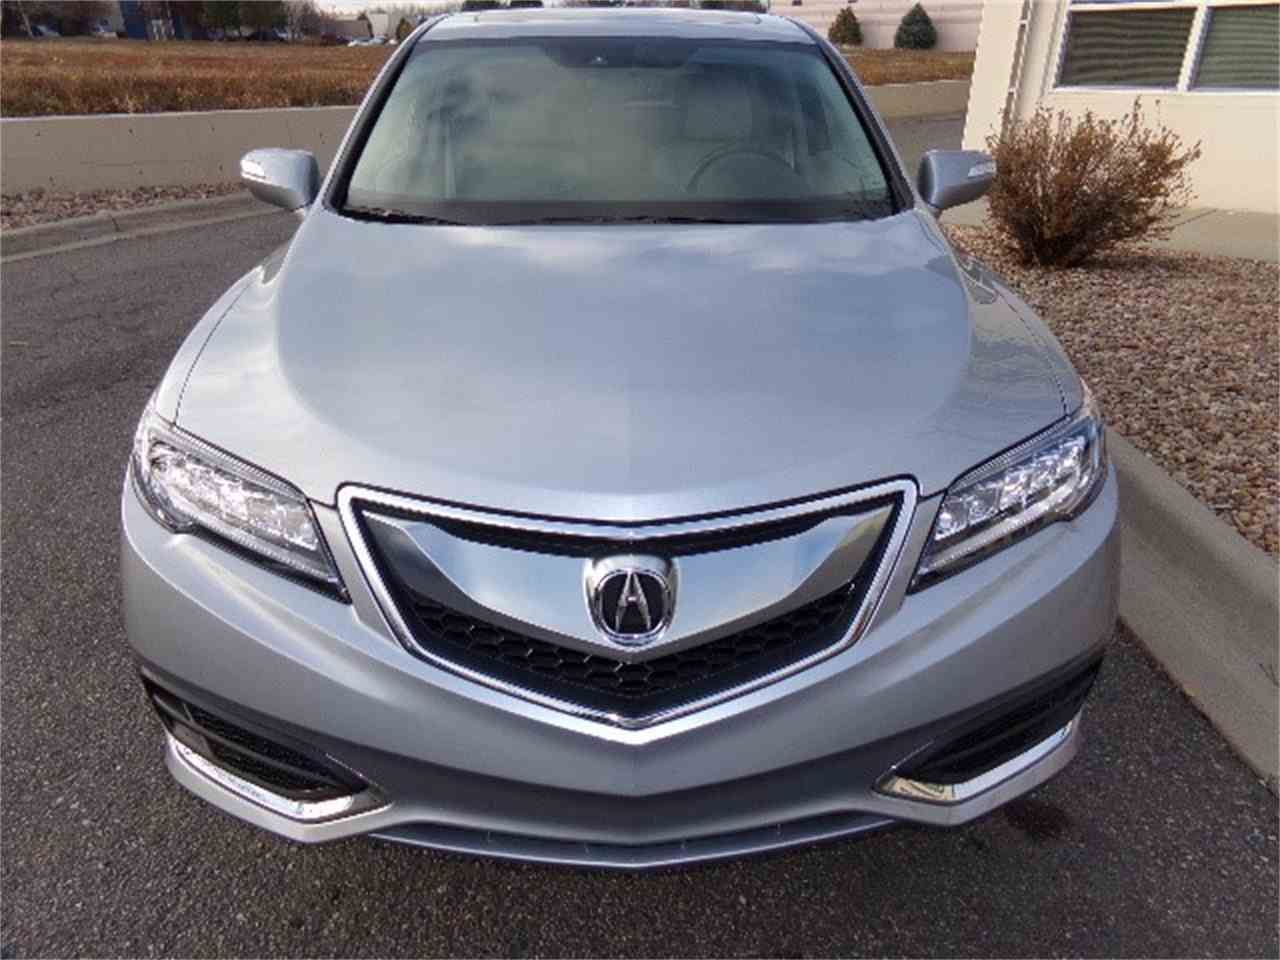 New Car. Old Car: 2017 Acura RDX